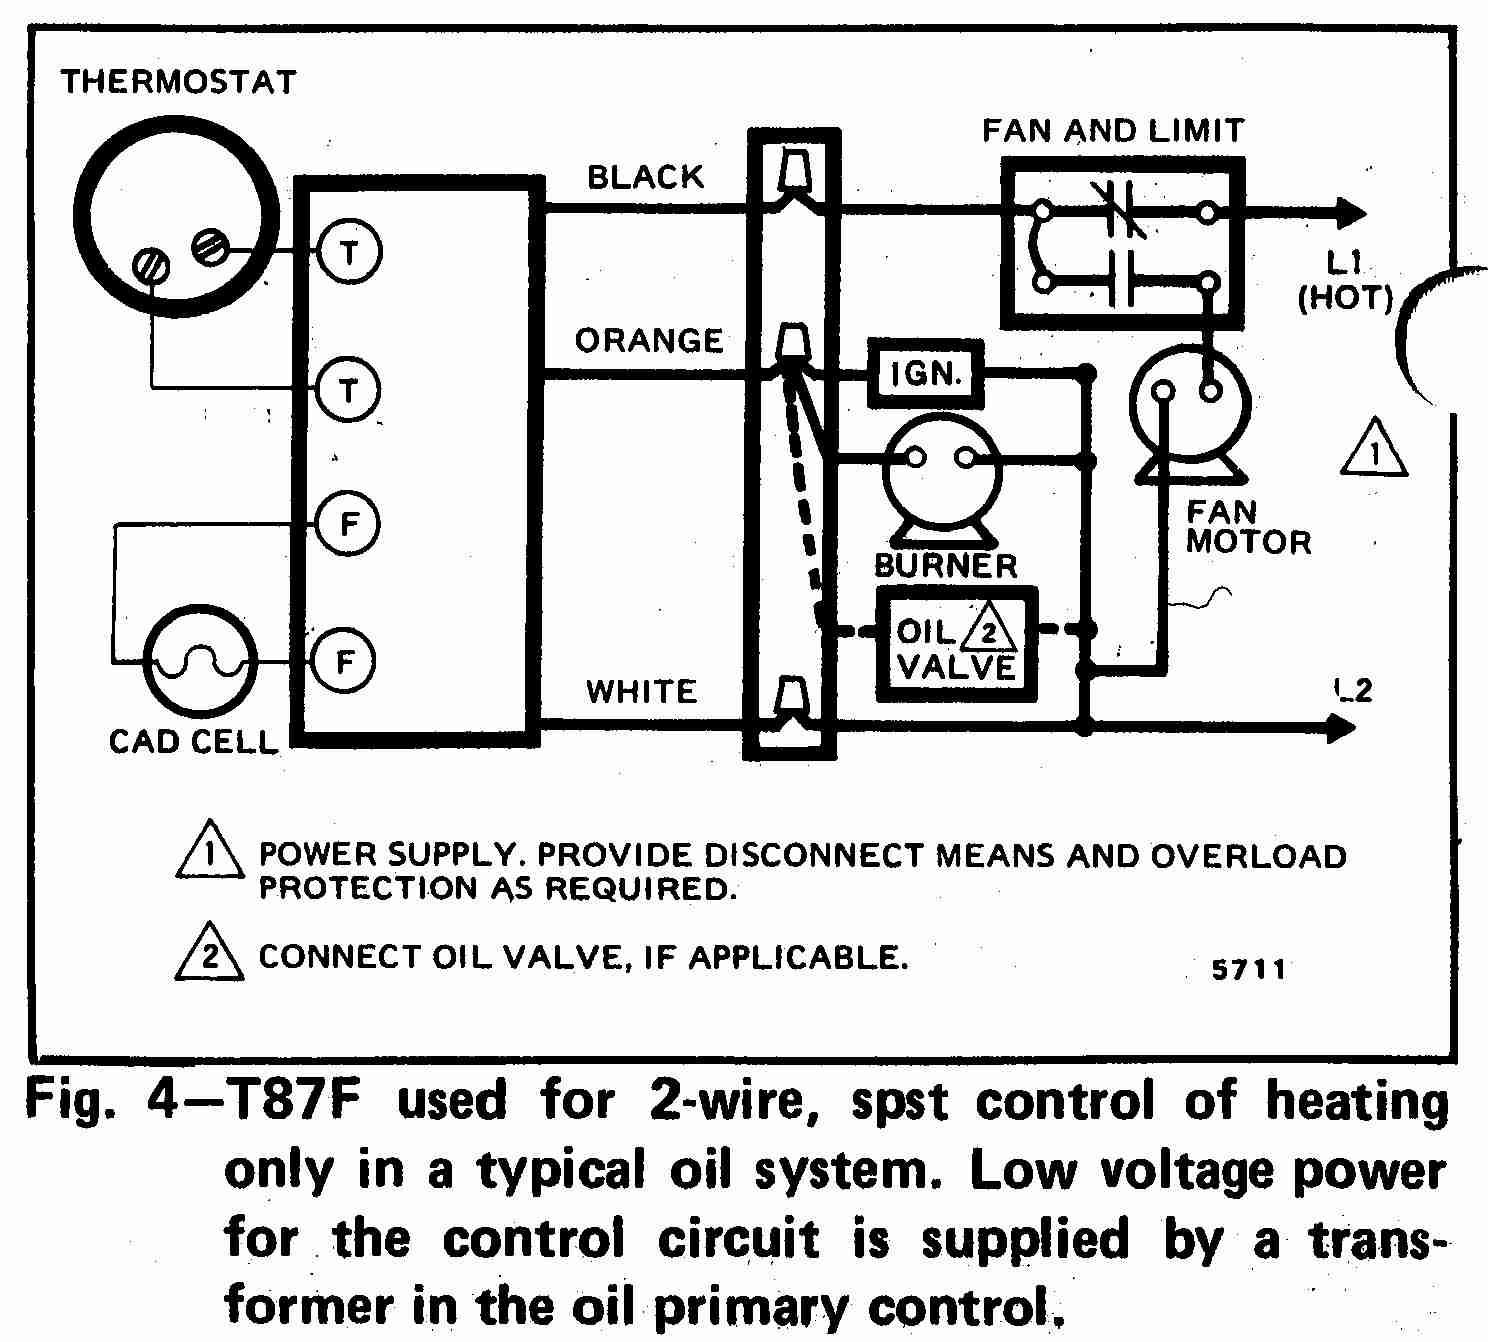 hight resolution of room thermostat wiring diagrams for hvac systems rh inspectapedia com heating wiring diagram multiple zones heating